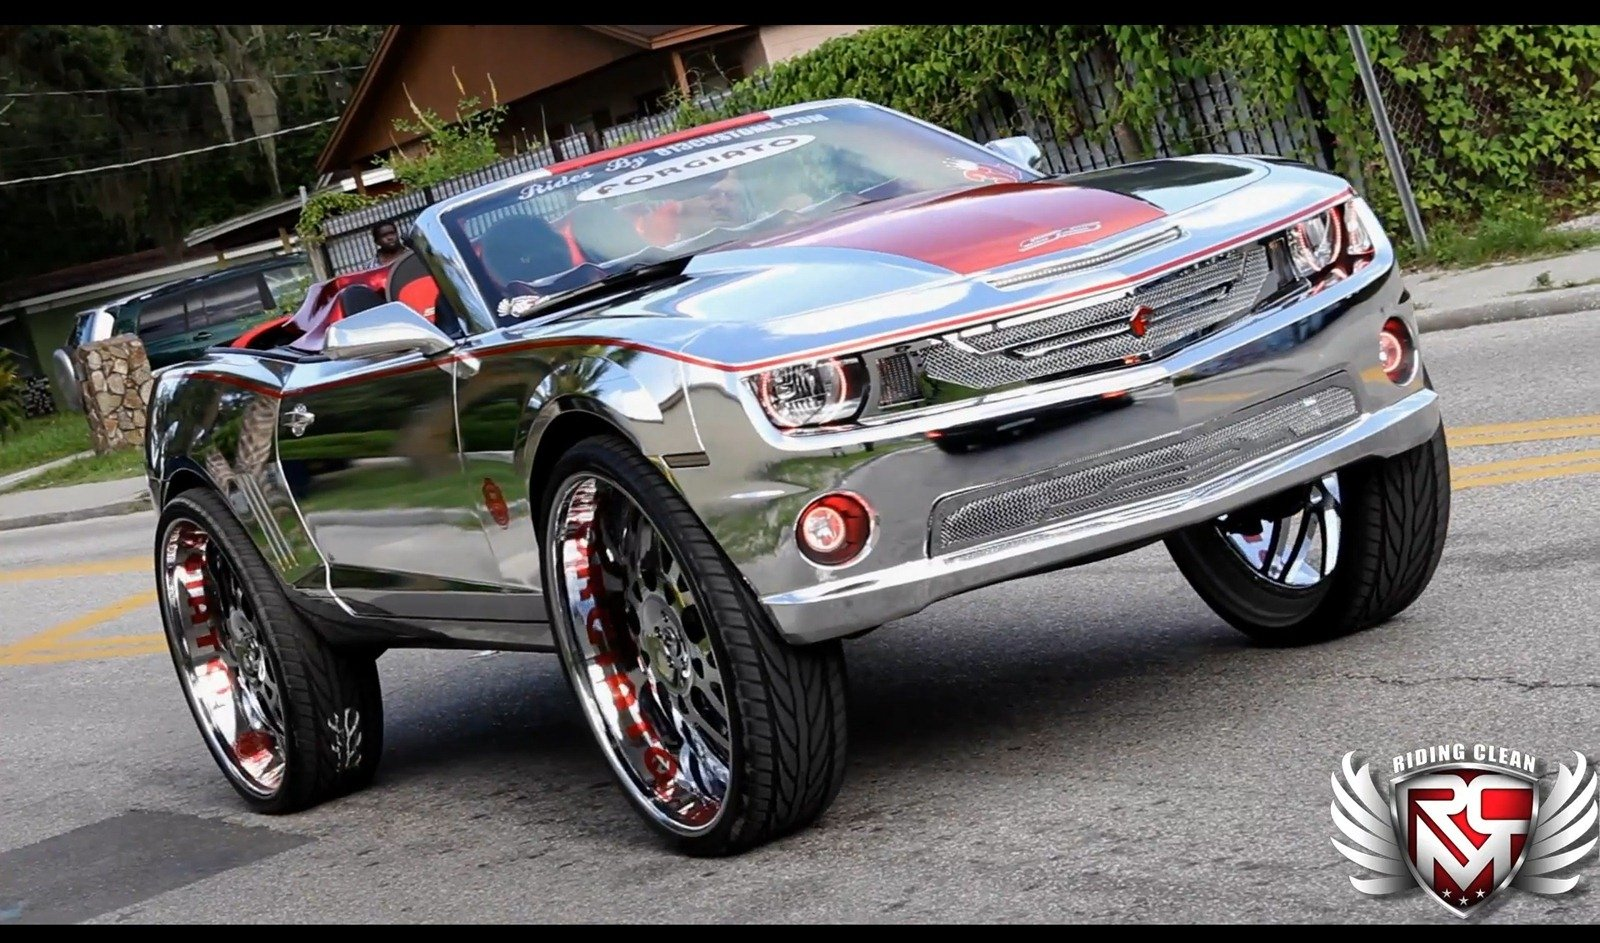 Chevrolet Camaro News And Reviews Top Speed 1968 Rs Dub Edition 2012 King By Florida Famous Mad Marks Stereo